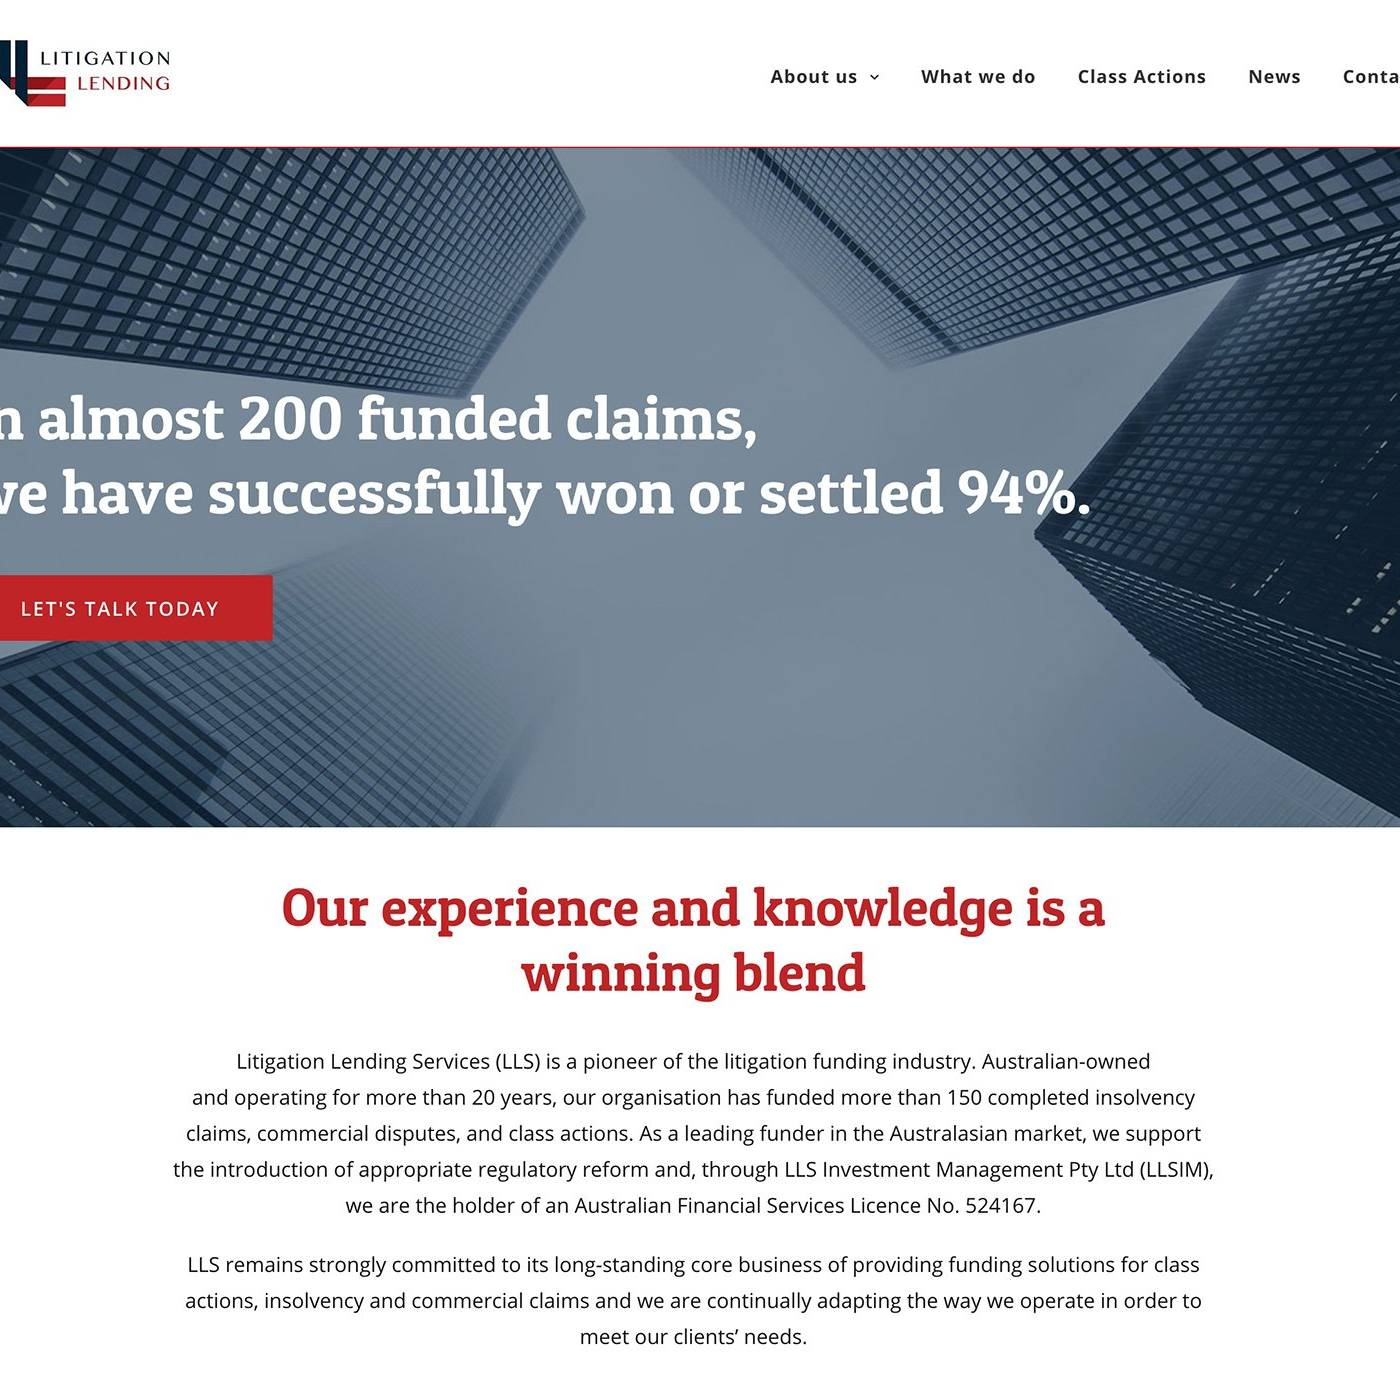 LITIGATION LENDING Site by The Creative Solutionist